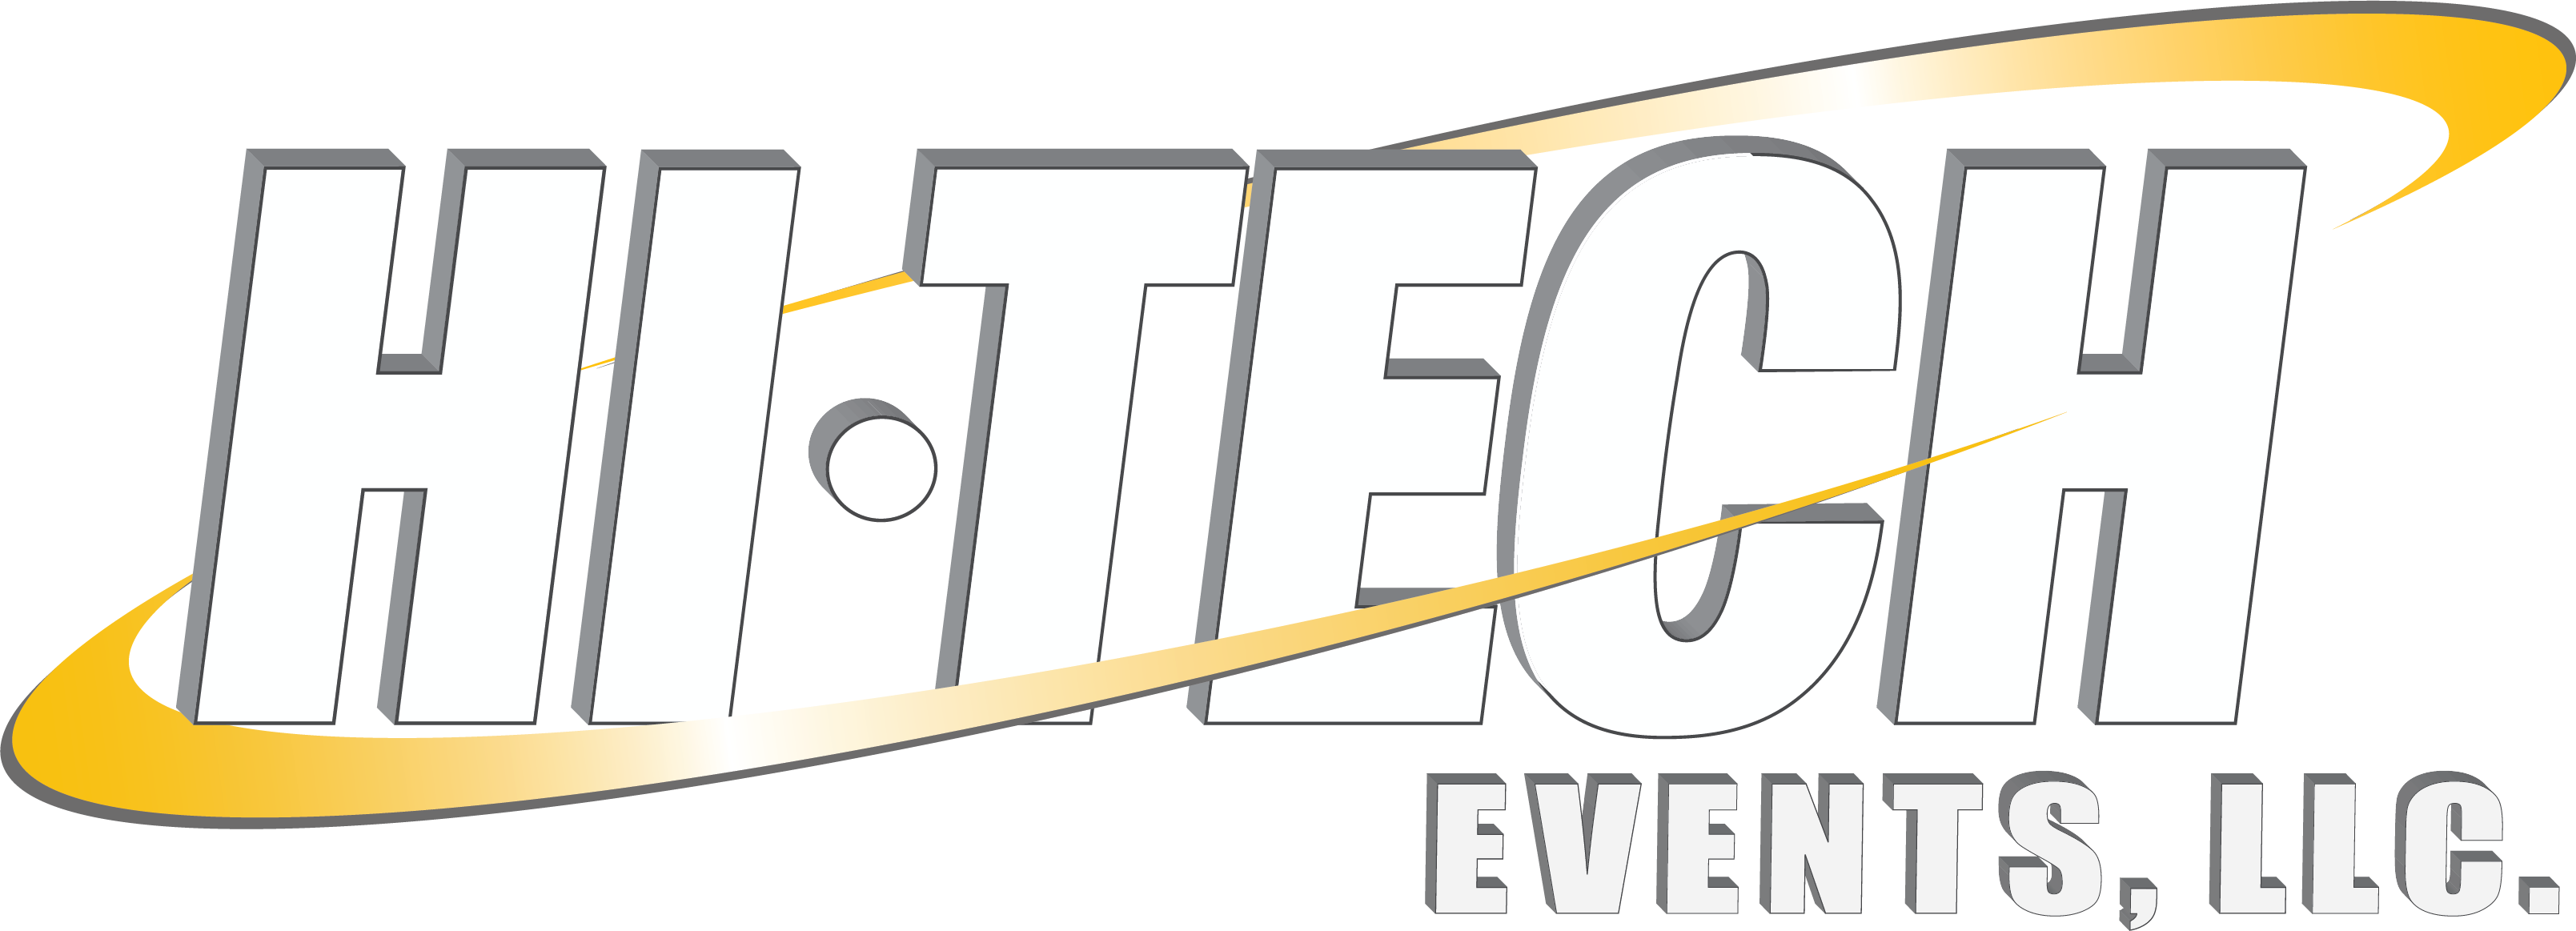 HITECH Events, LLC